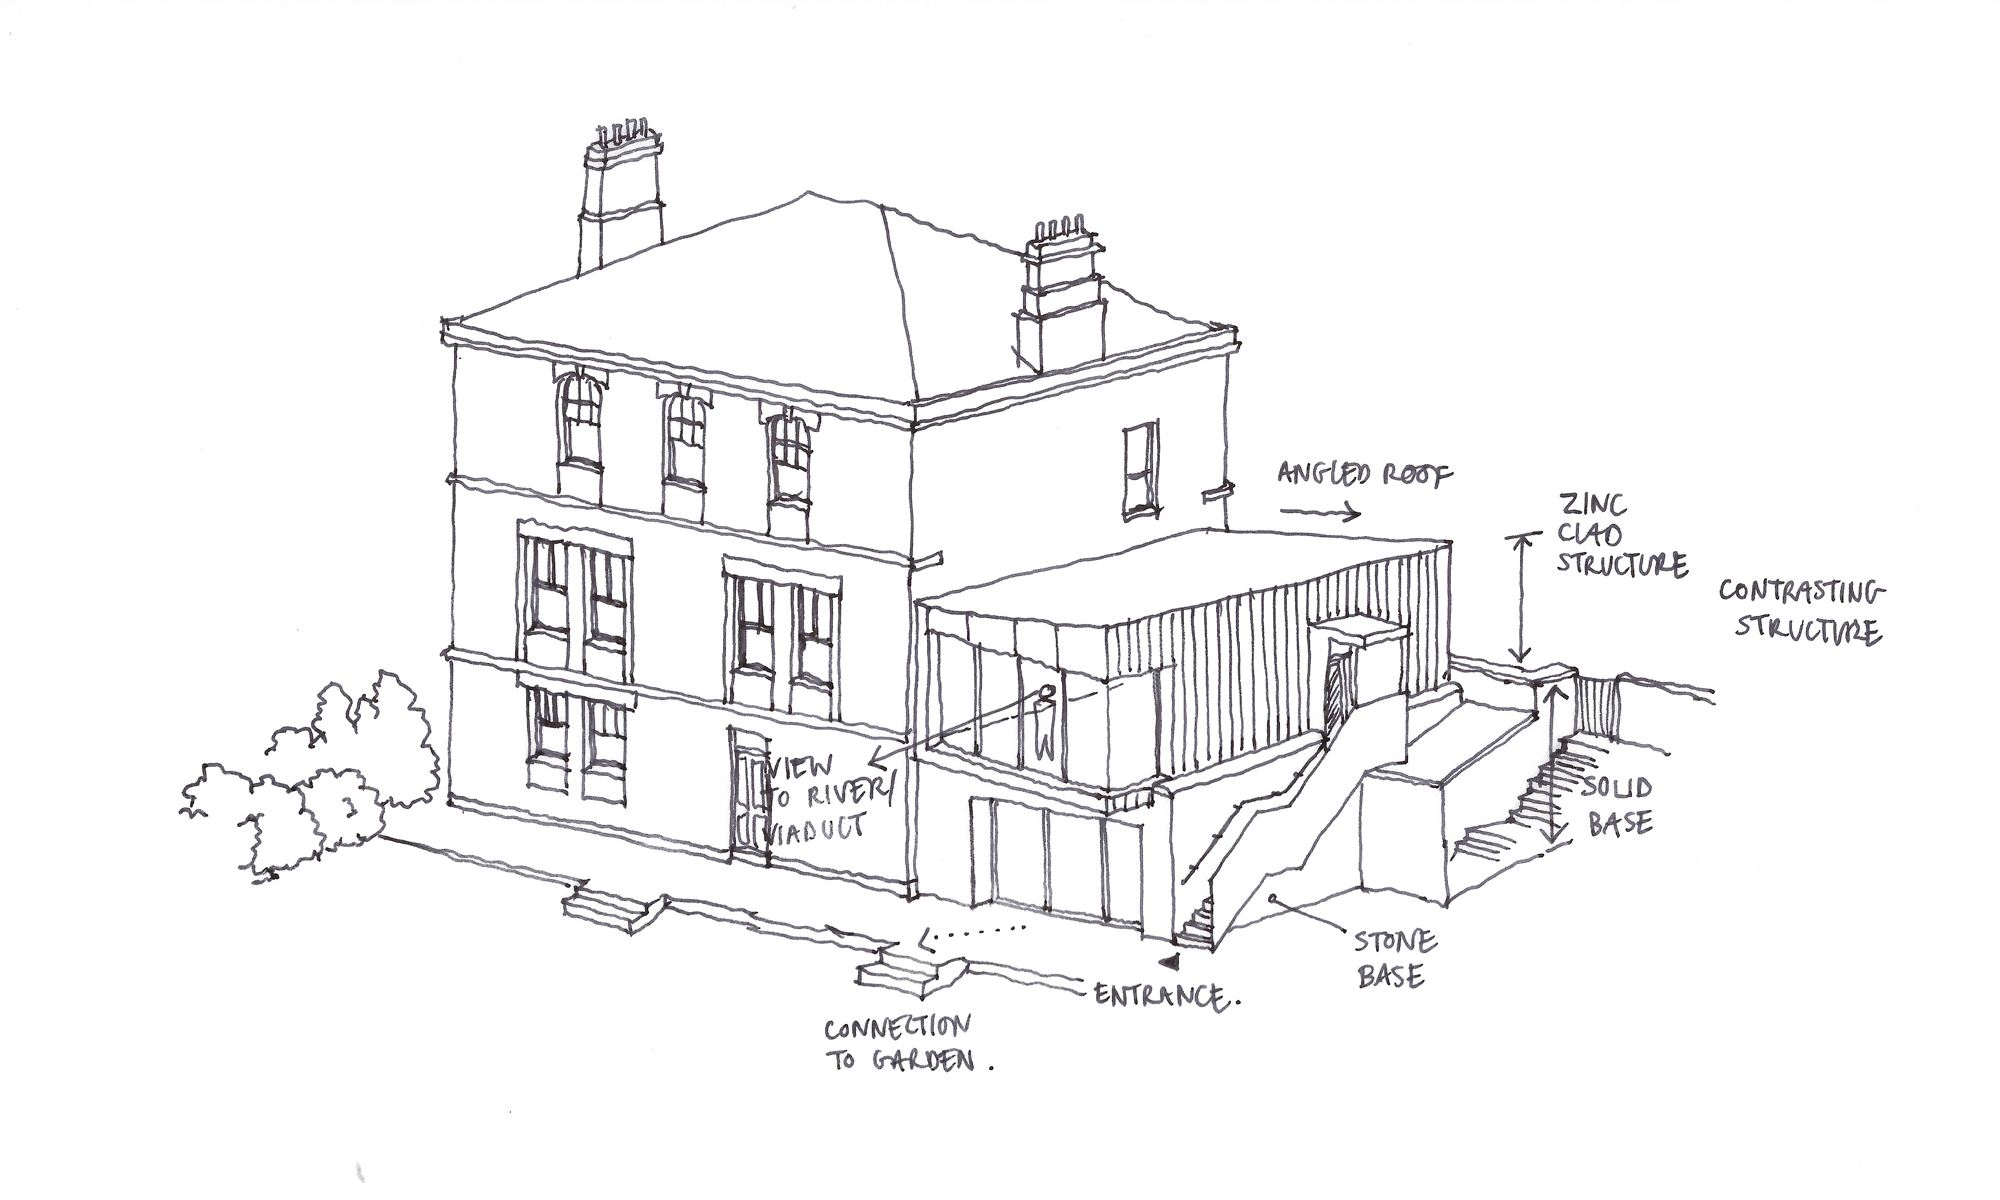 Vicarage Planning Permission